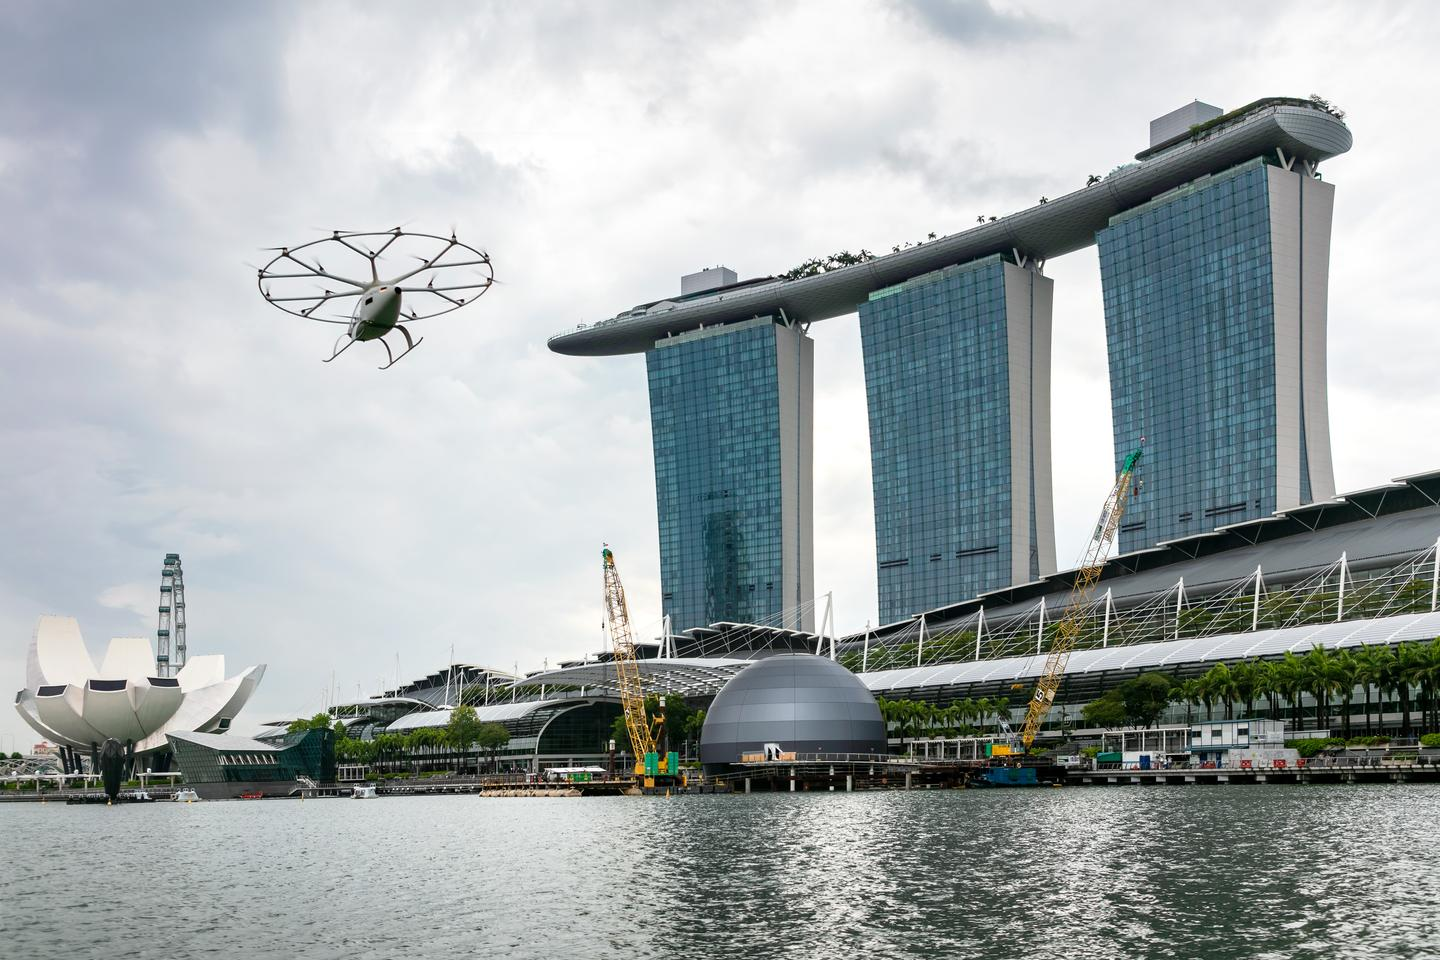 The Volocopter 2X took off on its first manned flight over Singapore's Marina Bay on Tuesday